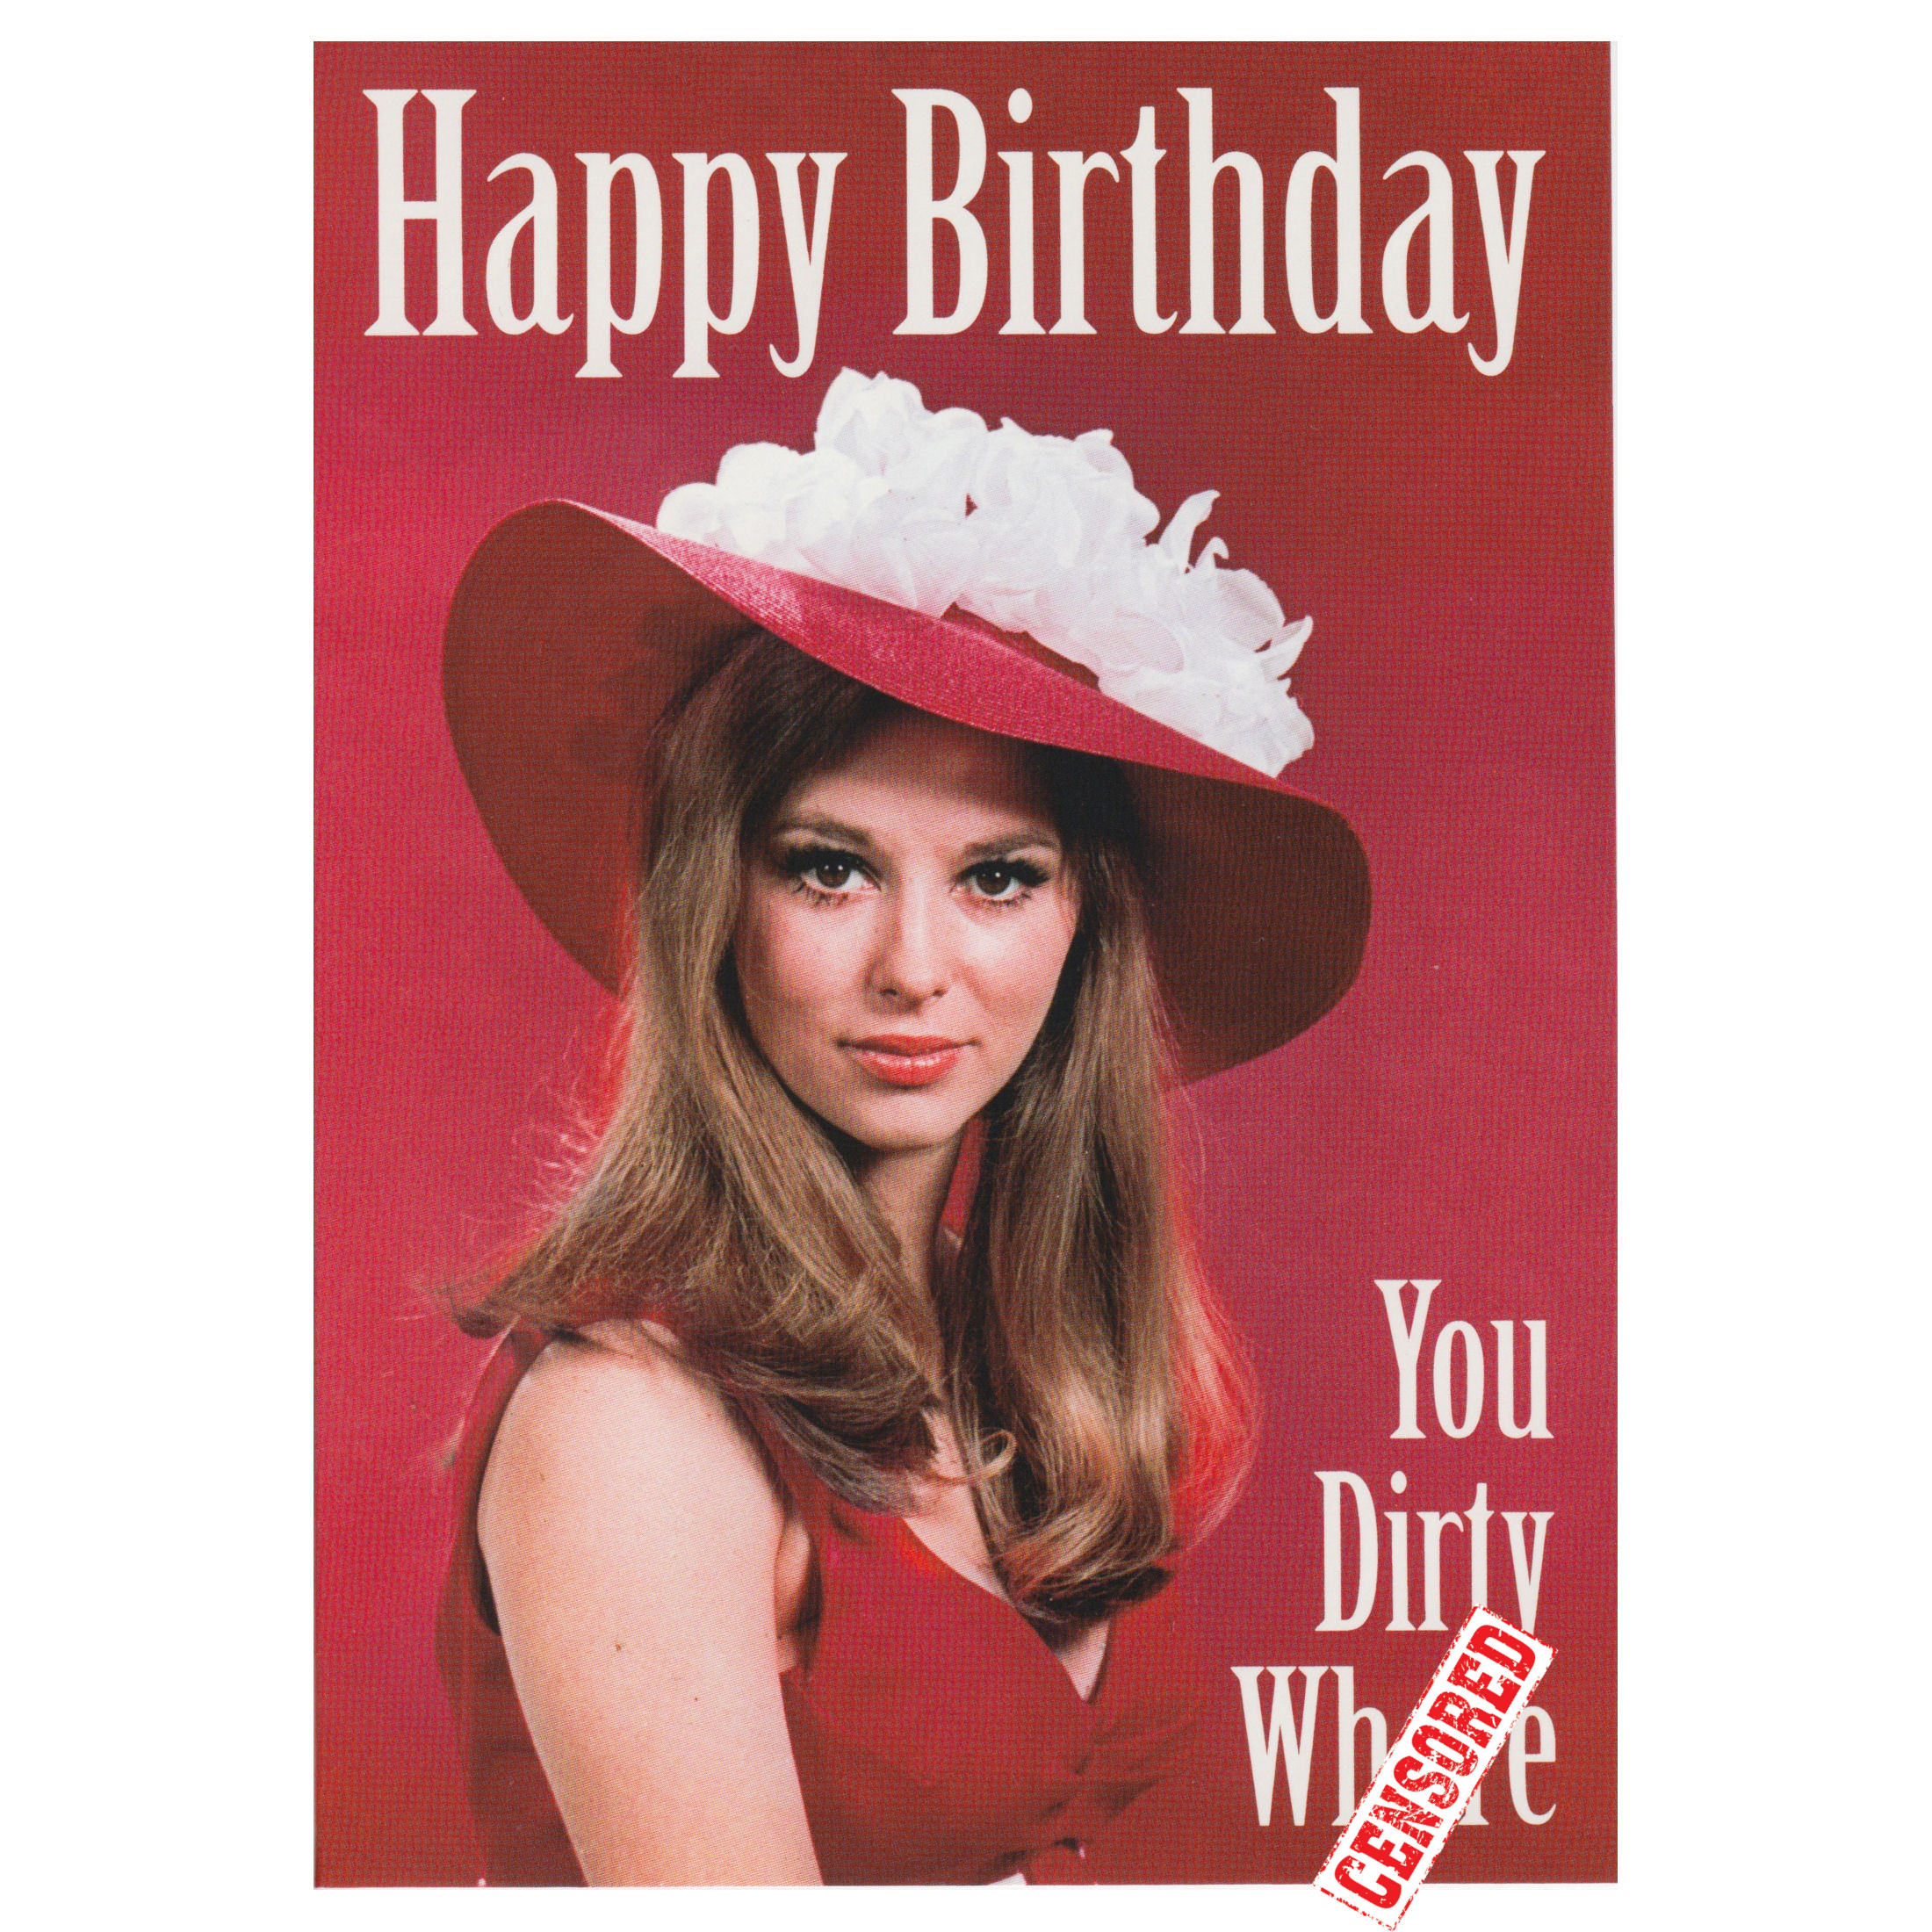 Happy birthday you dirty w greeting card birthday adult humour item specifics m4hsunfo